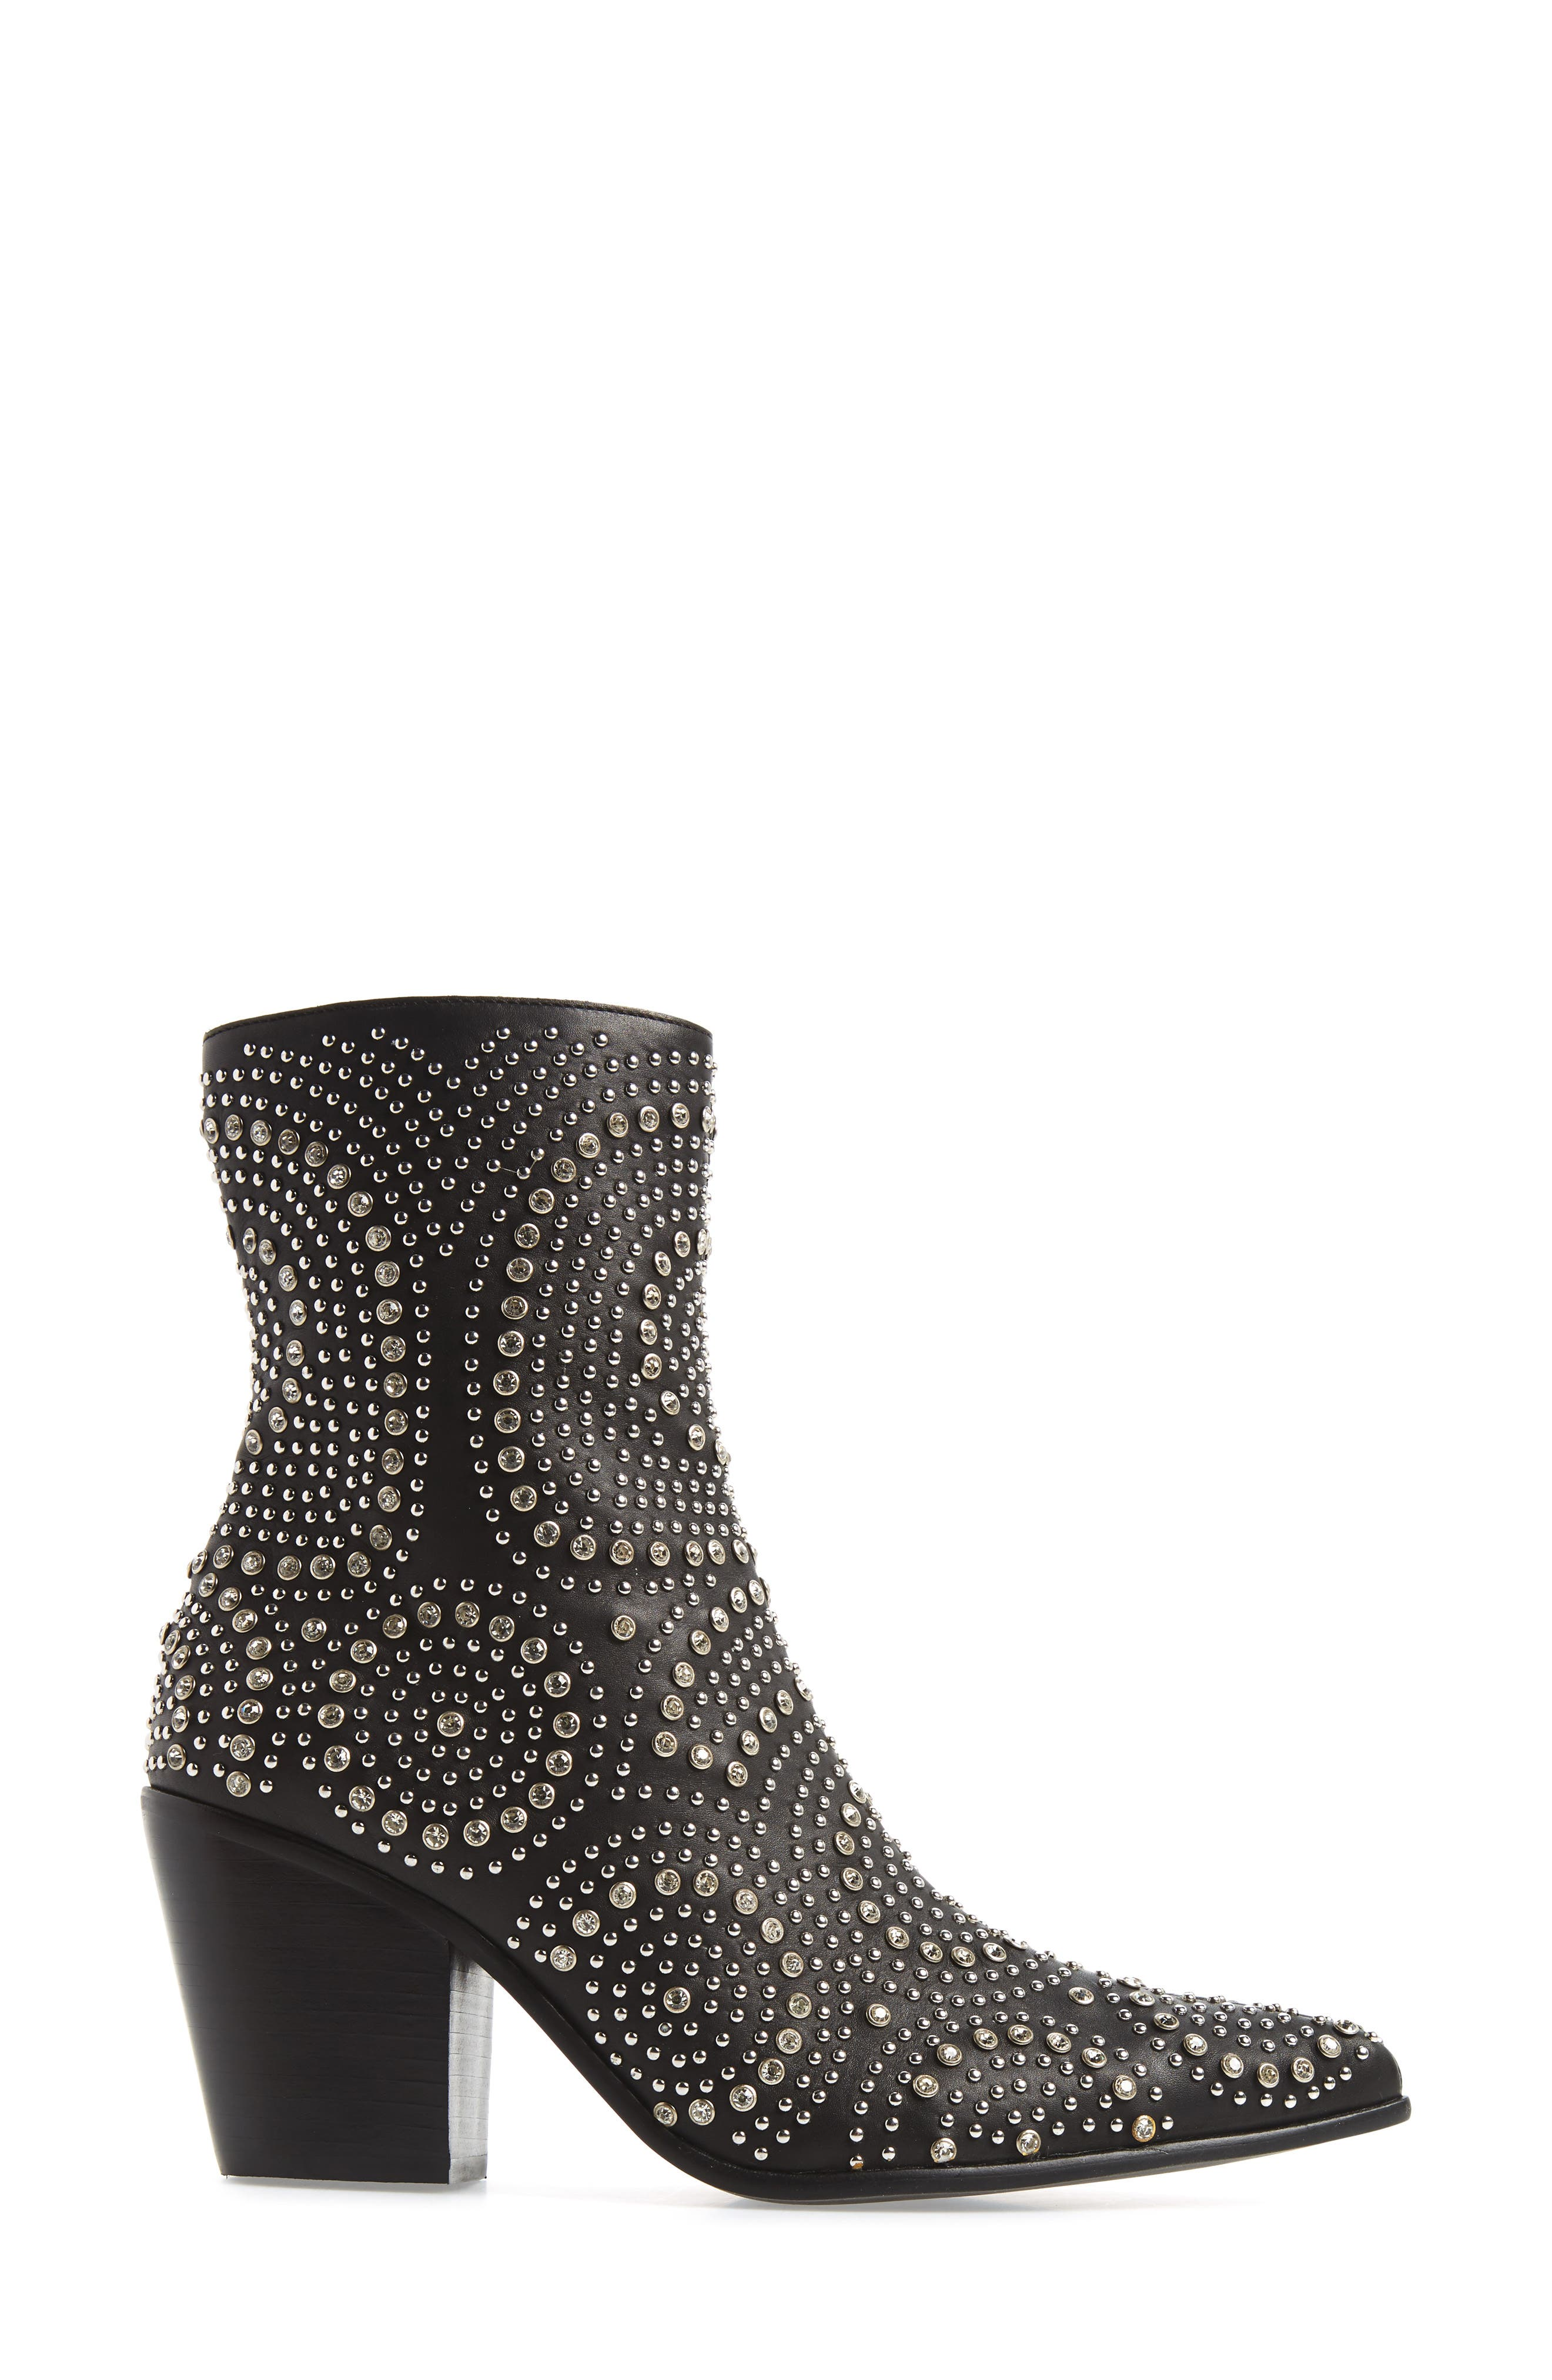 ACE-SJ Embellished Bootie,                             Alternate thumbnail 3, color,                             BLACK/ SILVER SUEDE